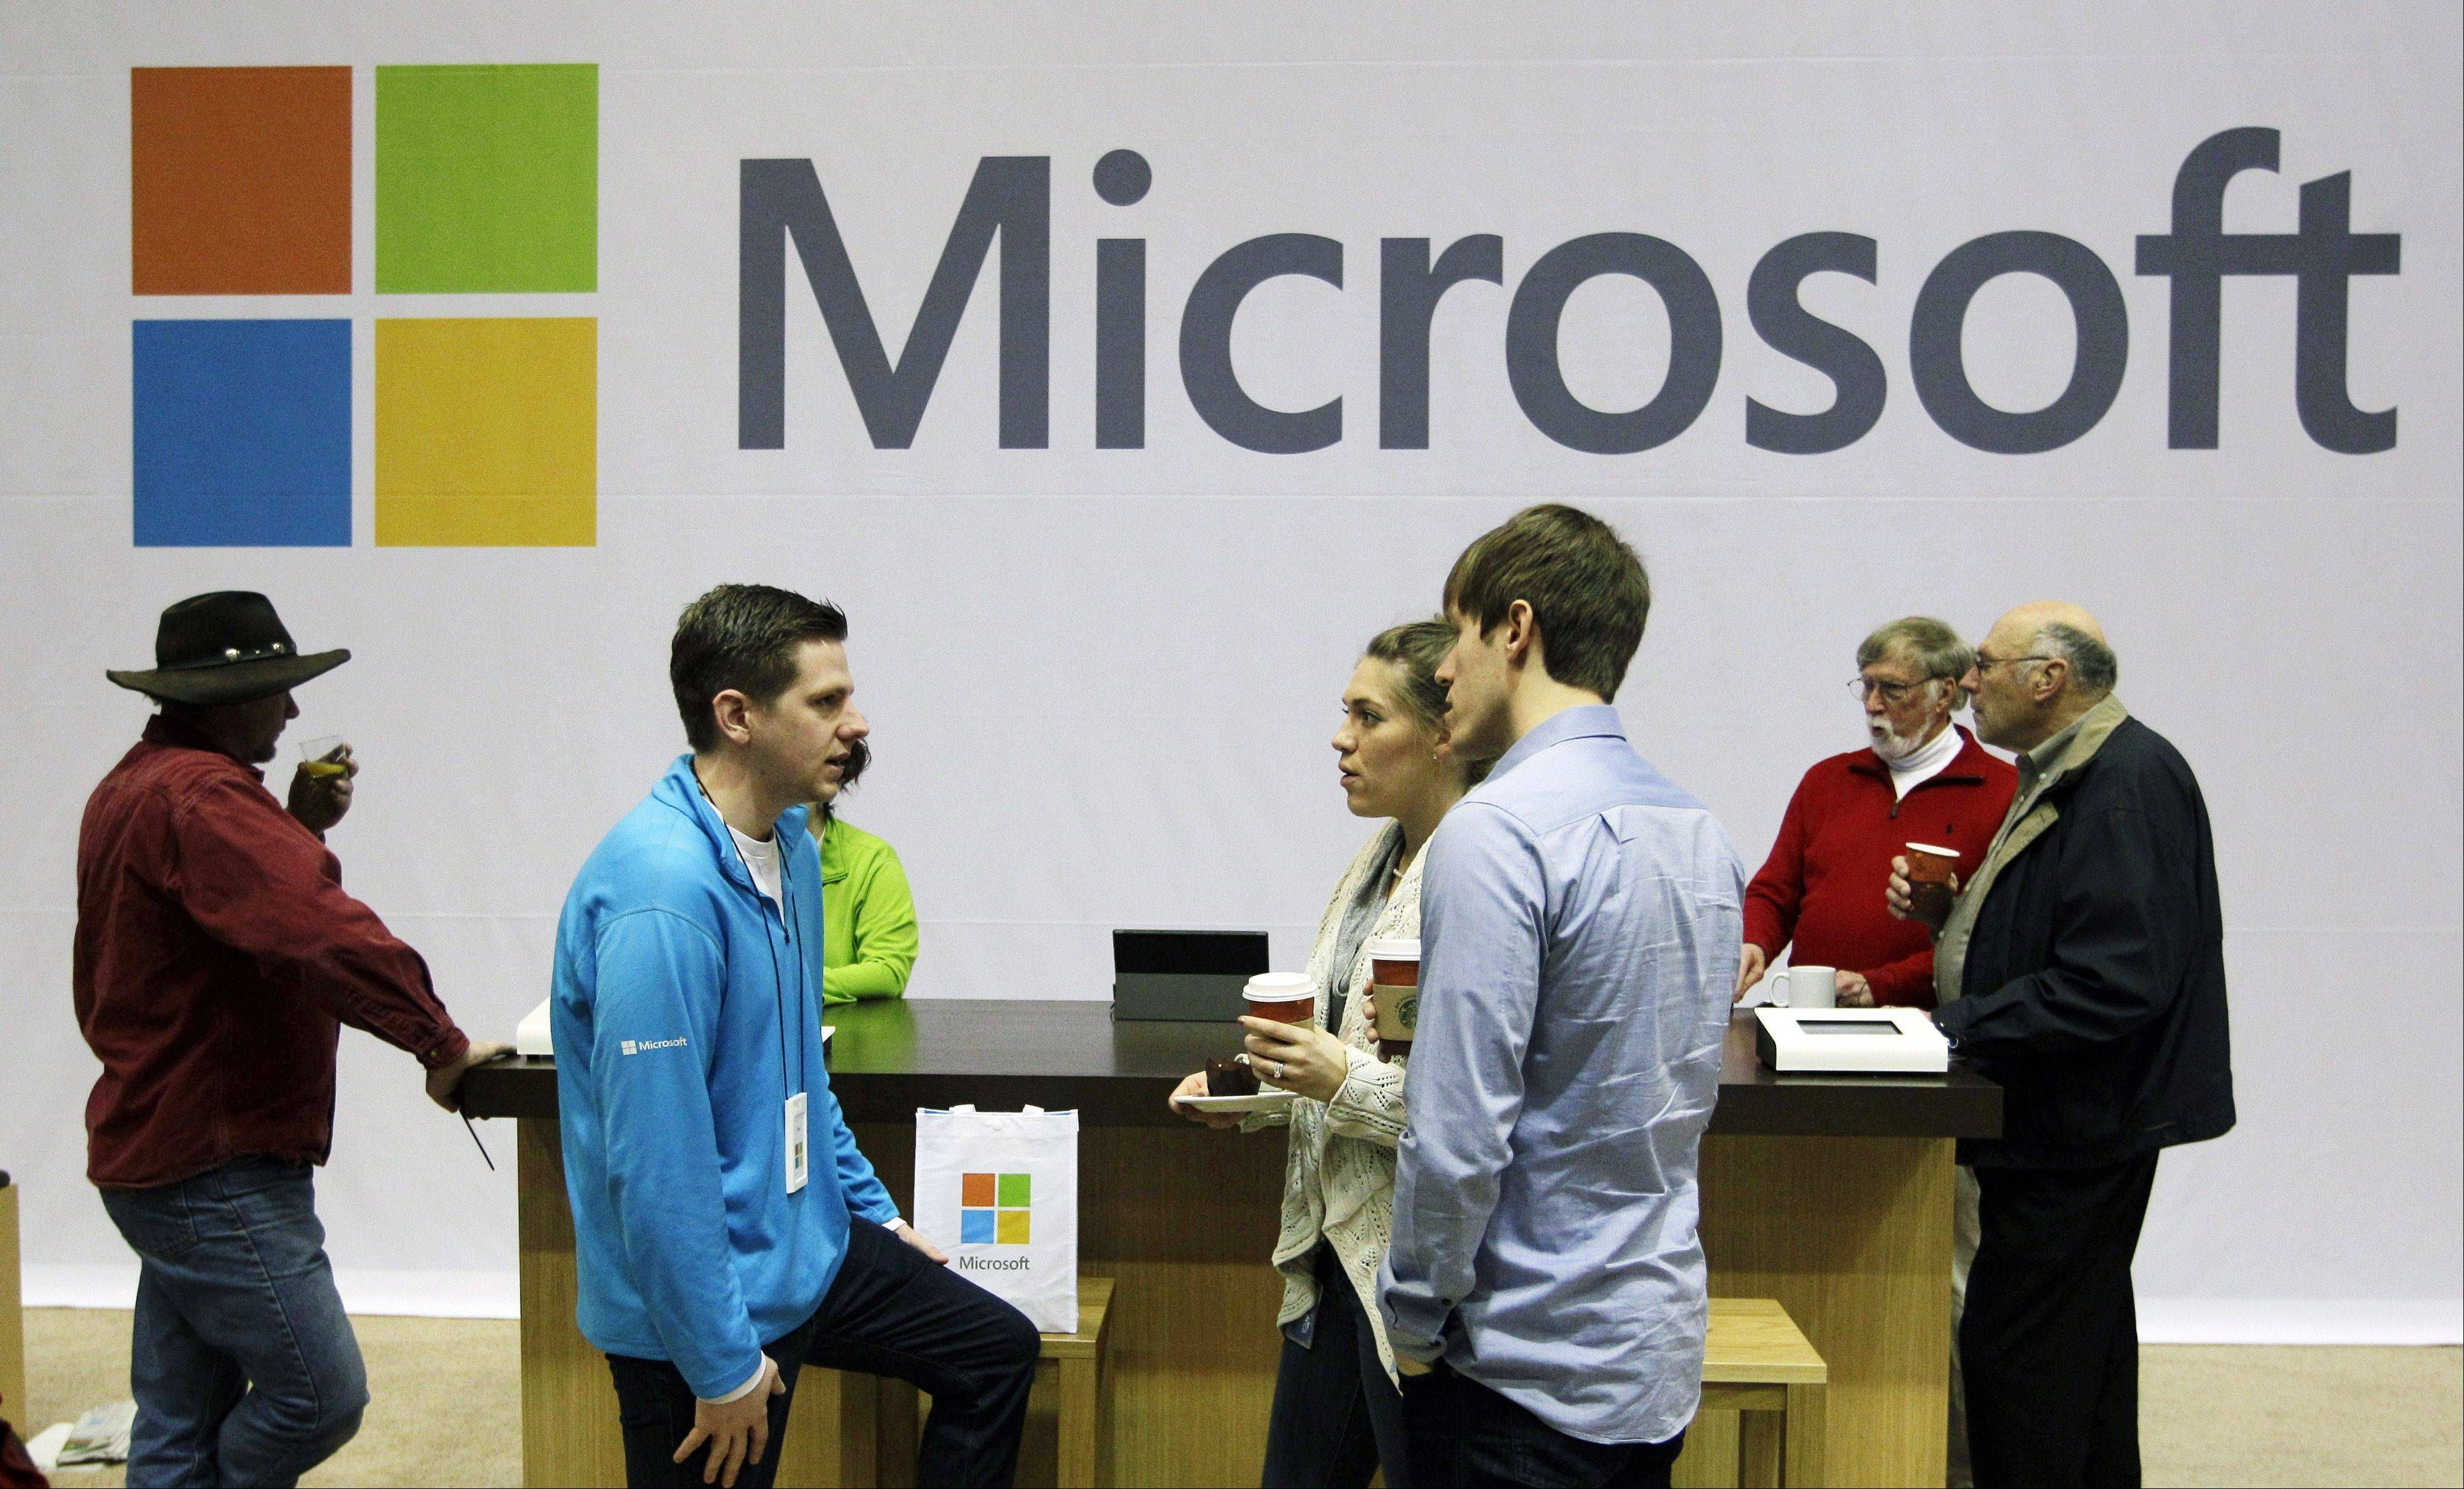 Microsoft Corp. retail store employees and guests mingle at a pop-up Microsoft Store during Microsoft's annual meeting of shareholders, in Bellevue, Wash. Longtime users of Hotmail, MSN and other Microsoft email services will start noticing a big change: When they sign in to check messages, they'll be sent to a new service called Outlook.com.